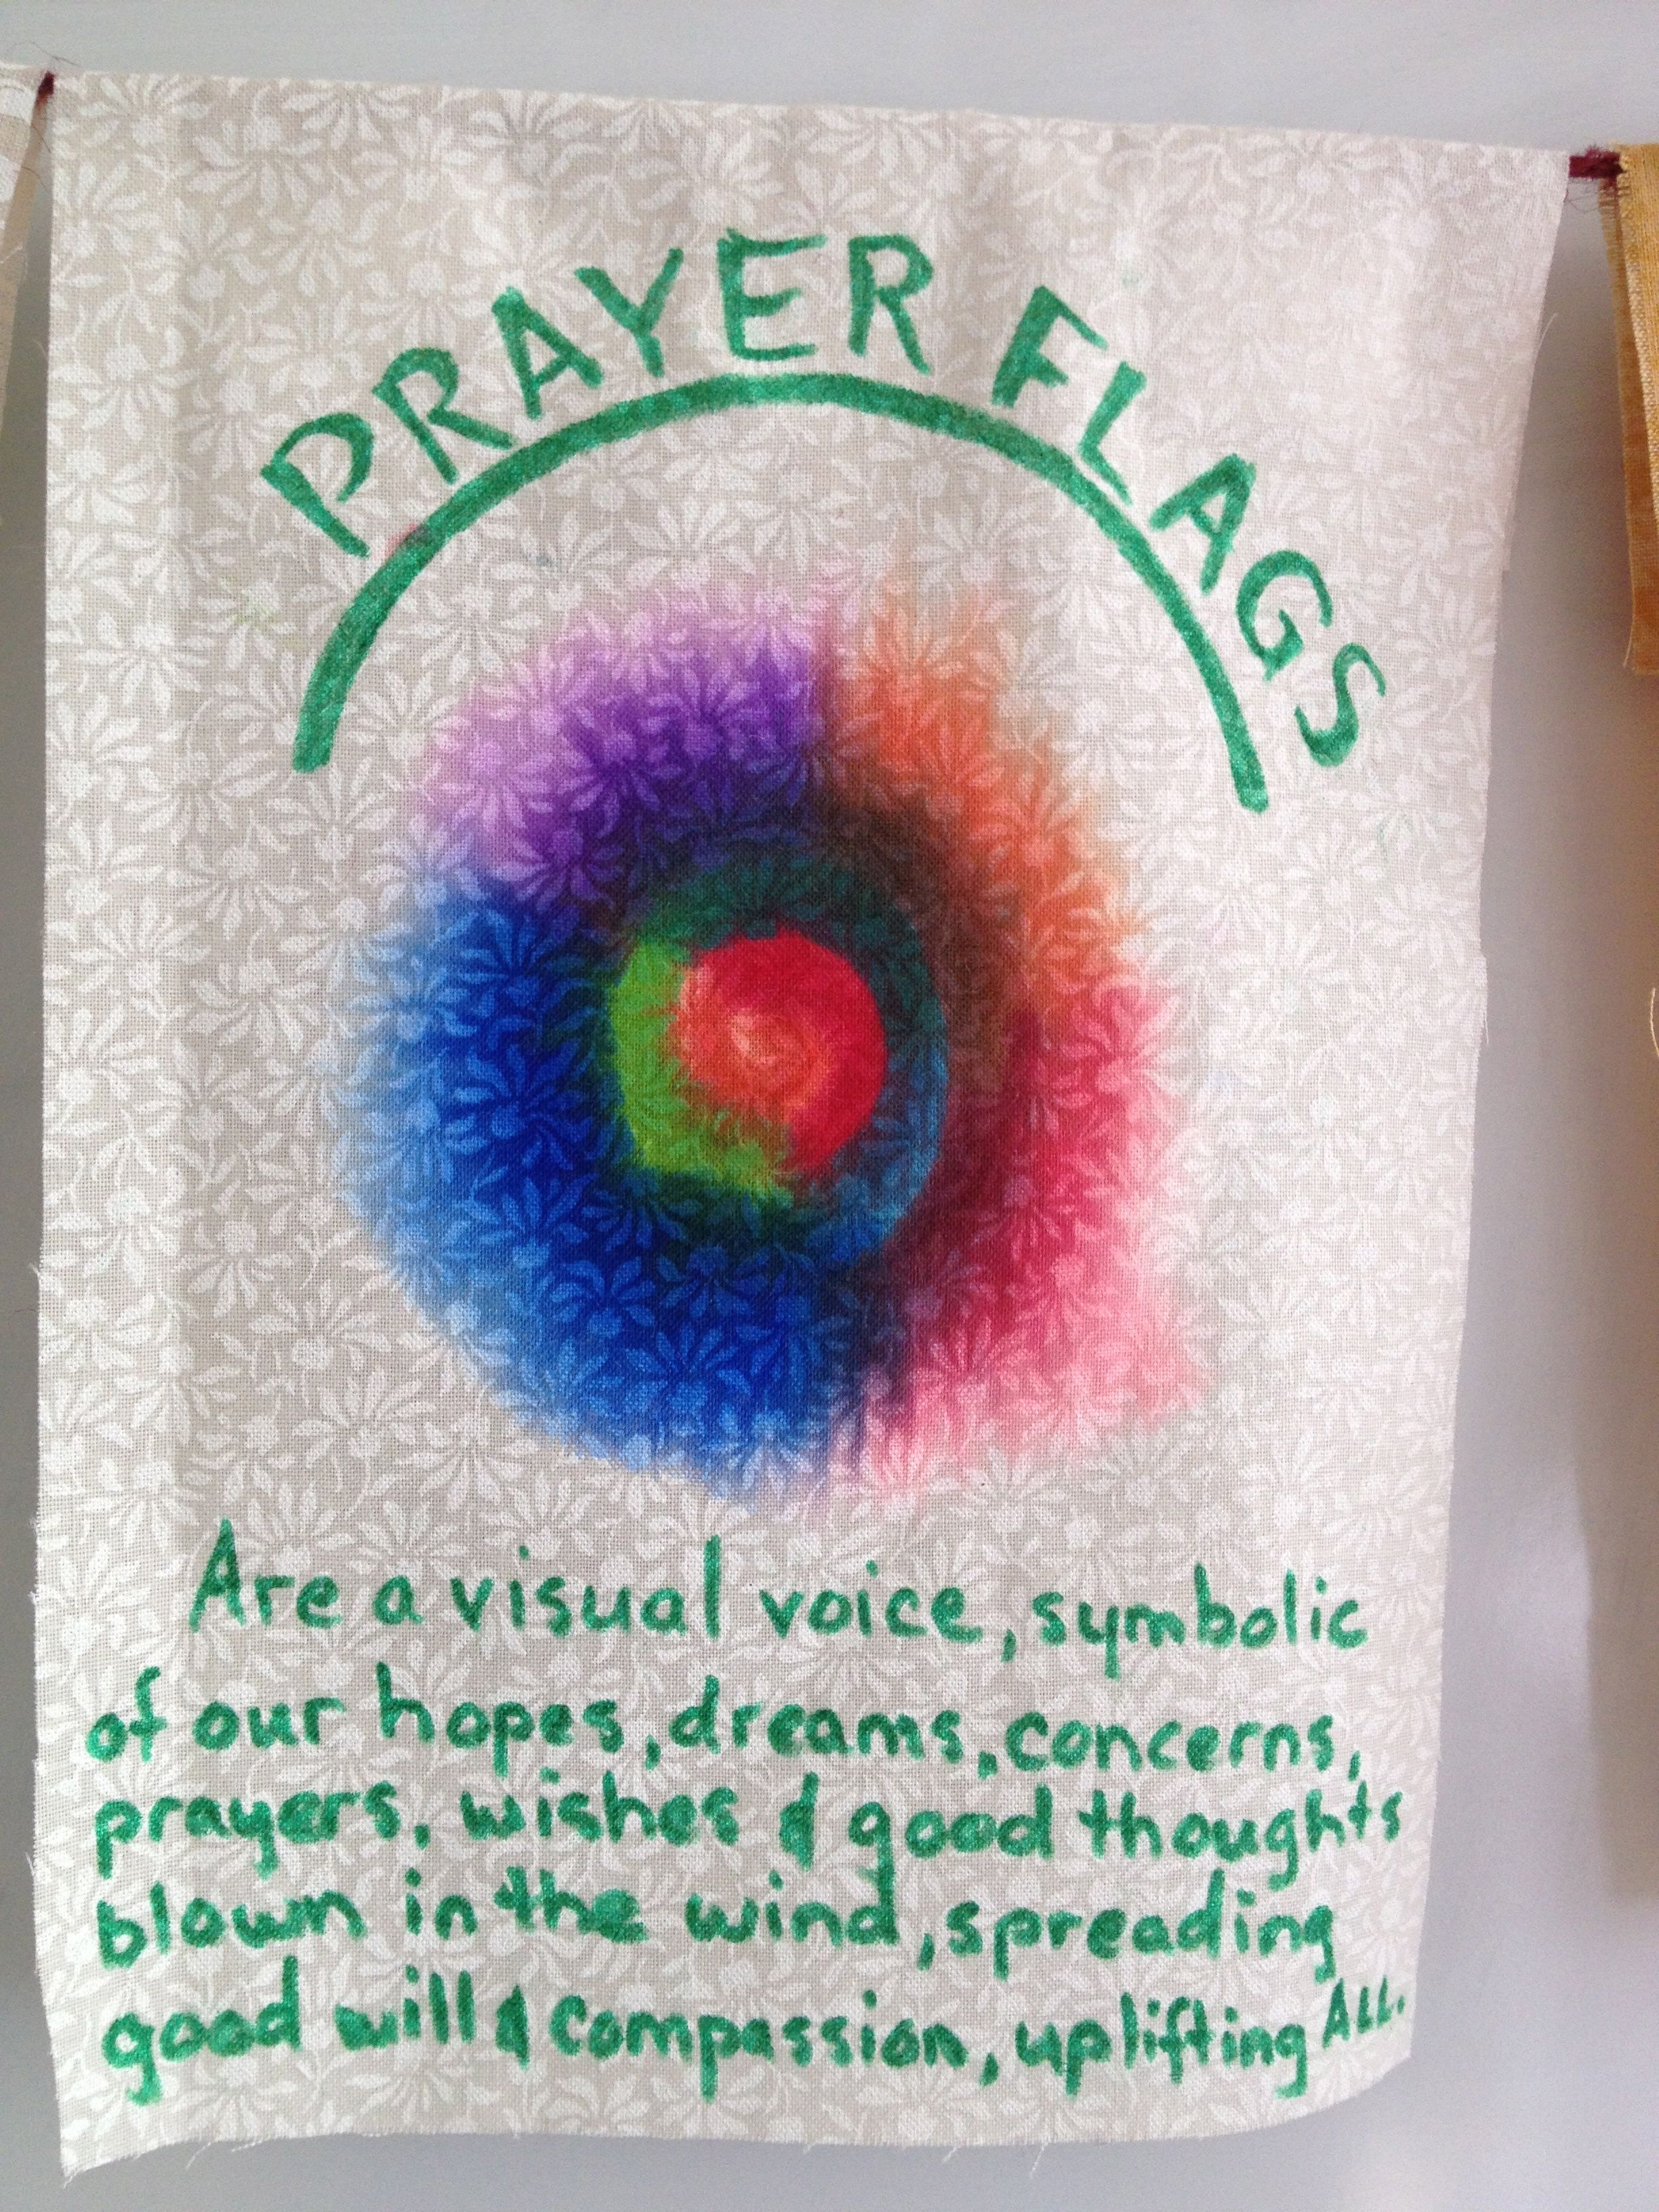 Meaning behind prayer flagswell said soul fullness could do a bunting line type of home decor full of personal prayers wishes dreams happy thoughts and other positive things a visual reminder day to day biocorpaavc Image collections